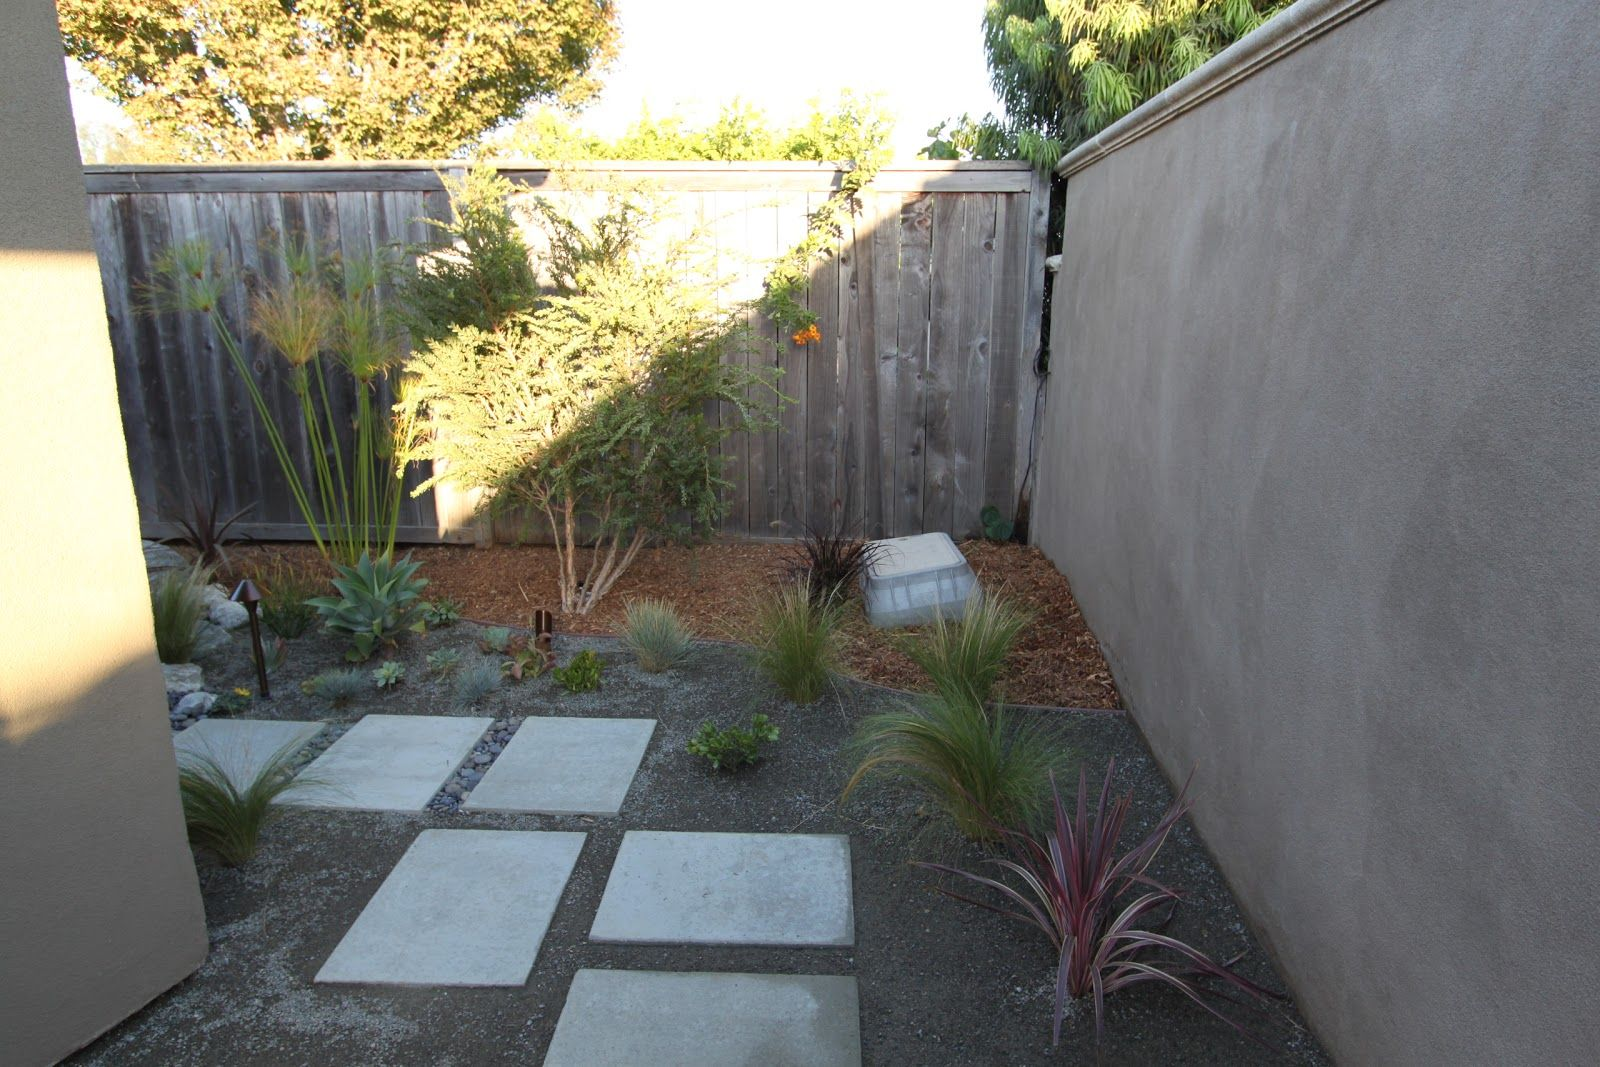 mid century modern landscaping ideas design ideas decors - Mid Century Modern Landscape Design Ideas